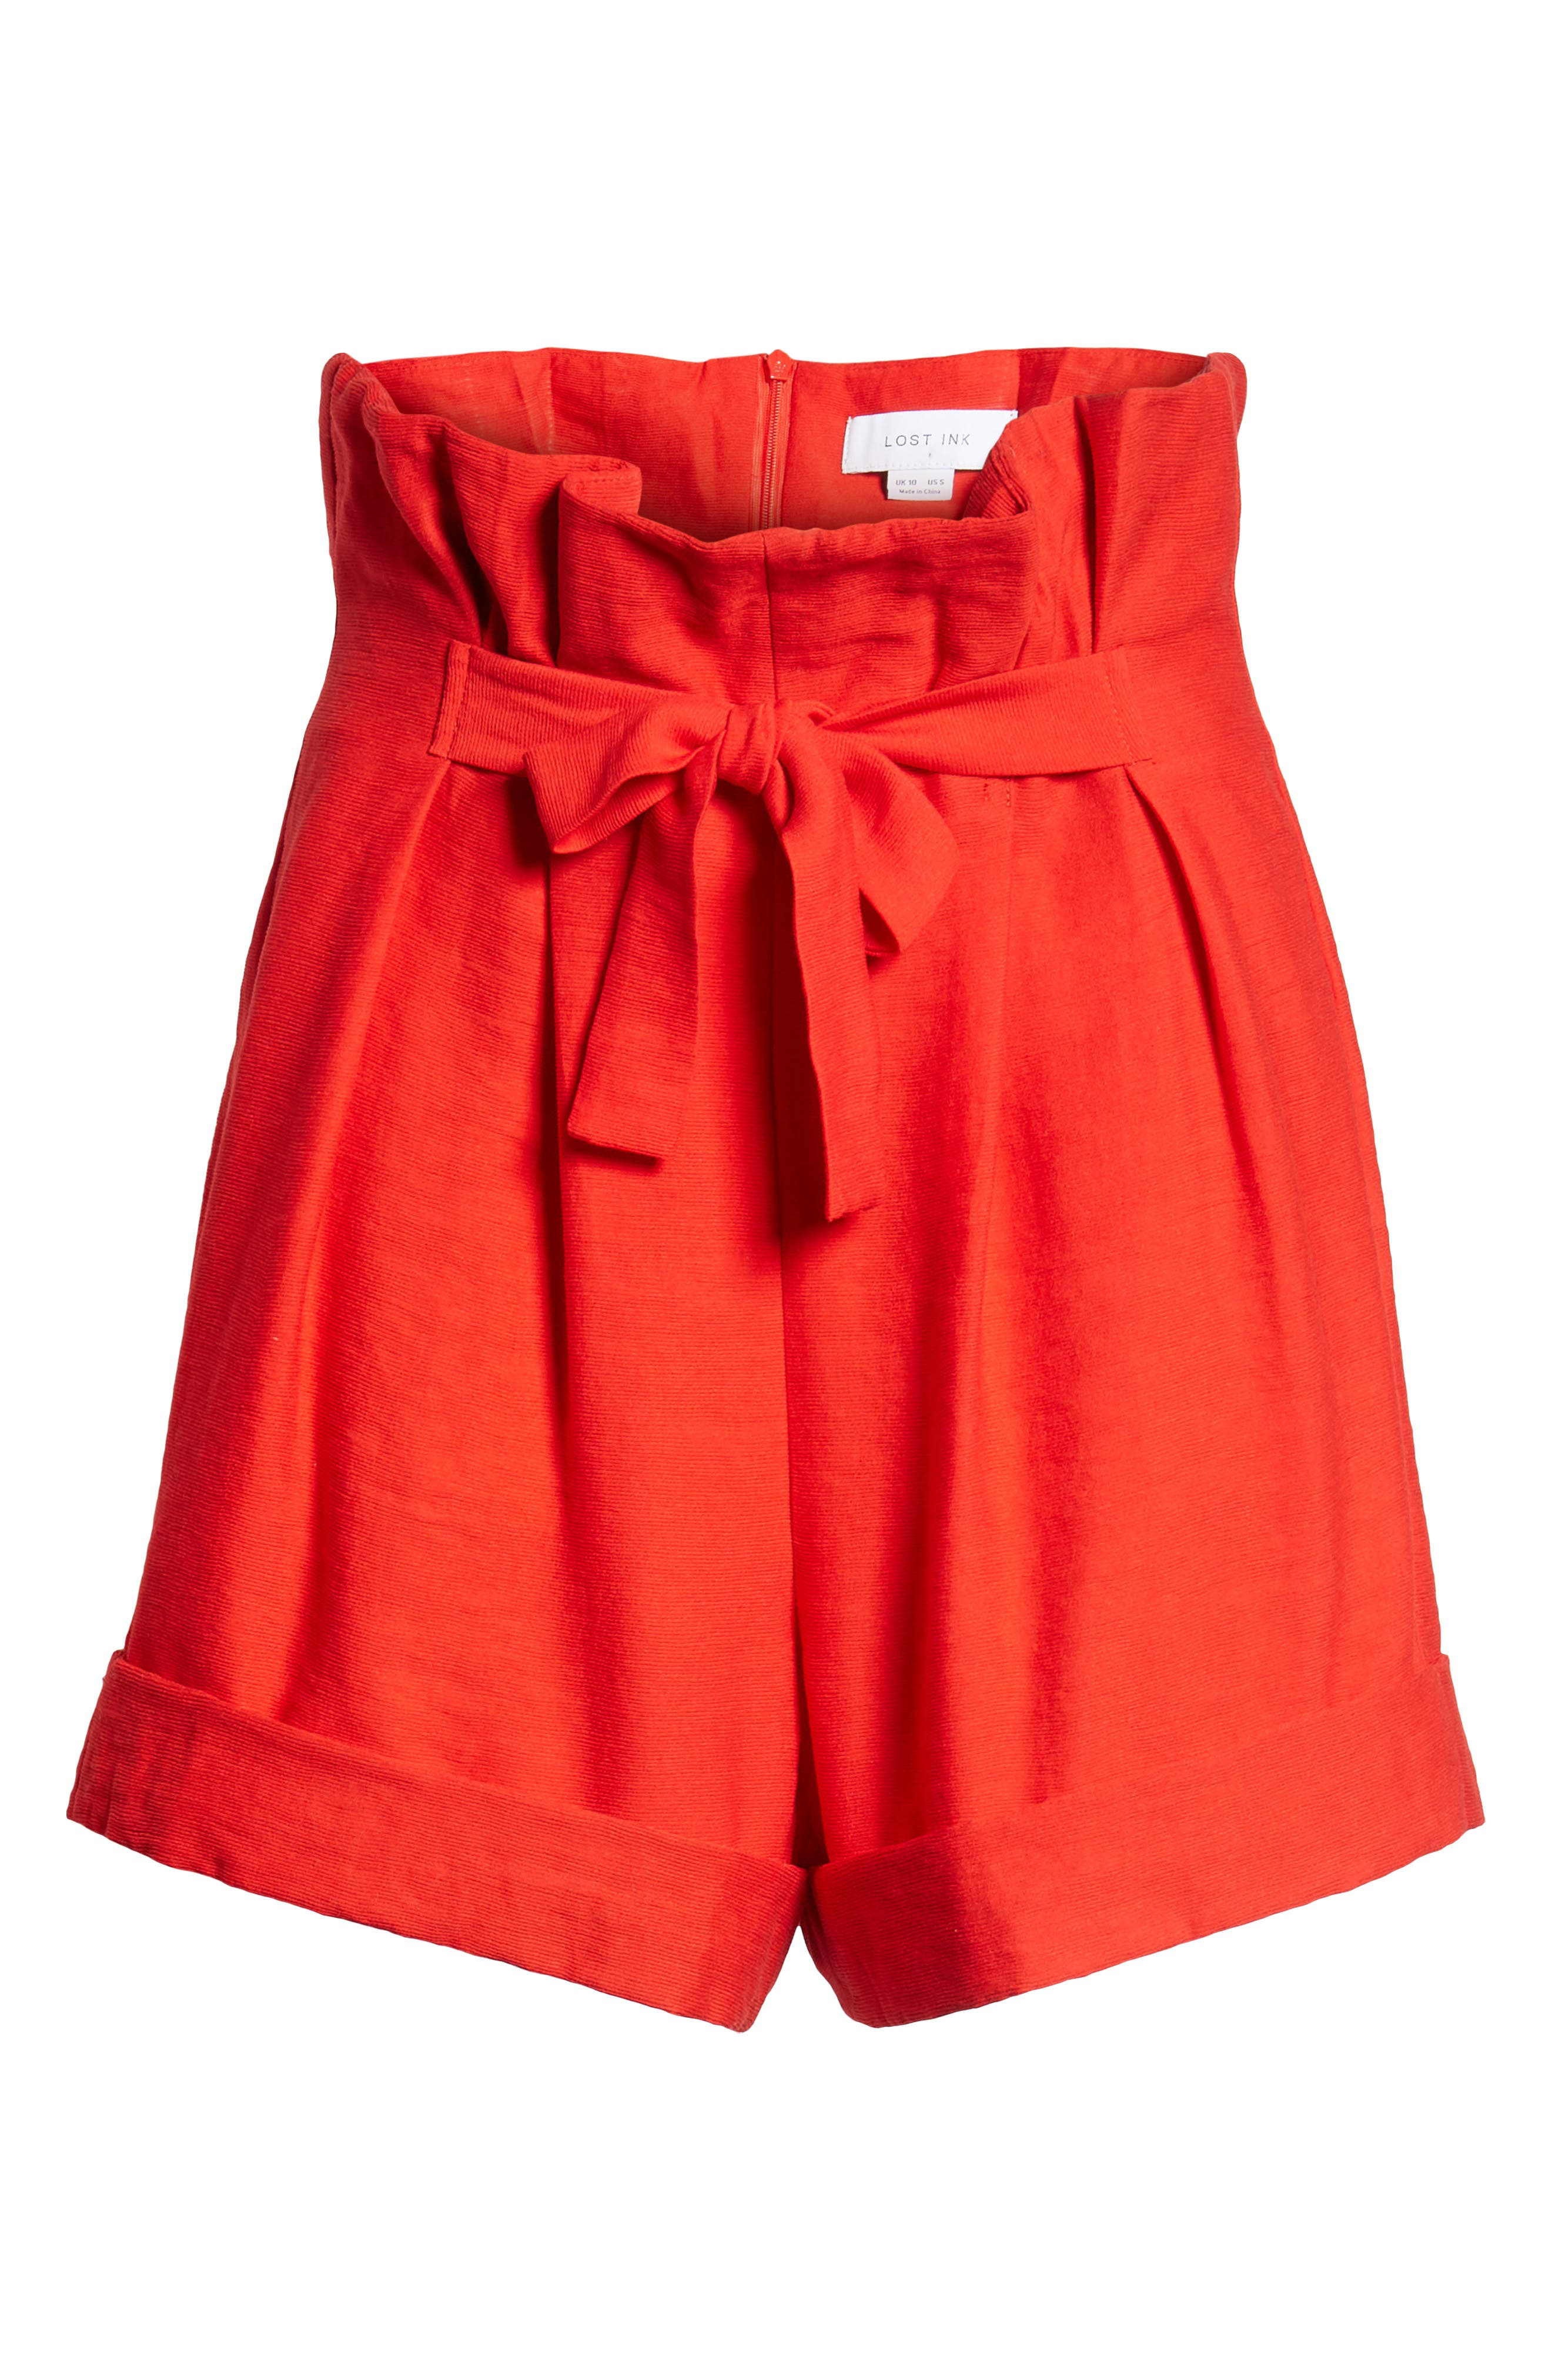 High Waist Short with Tie Detail,                             Alternate thumbnail 6, color,                             600